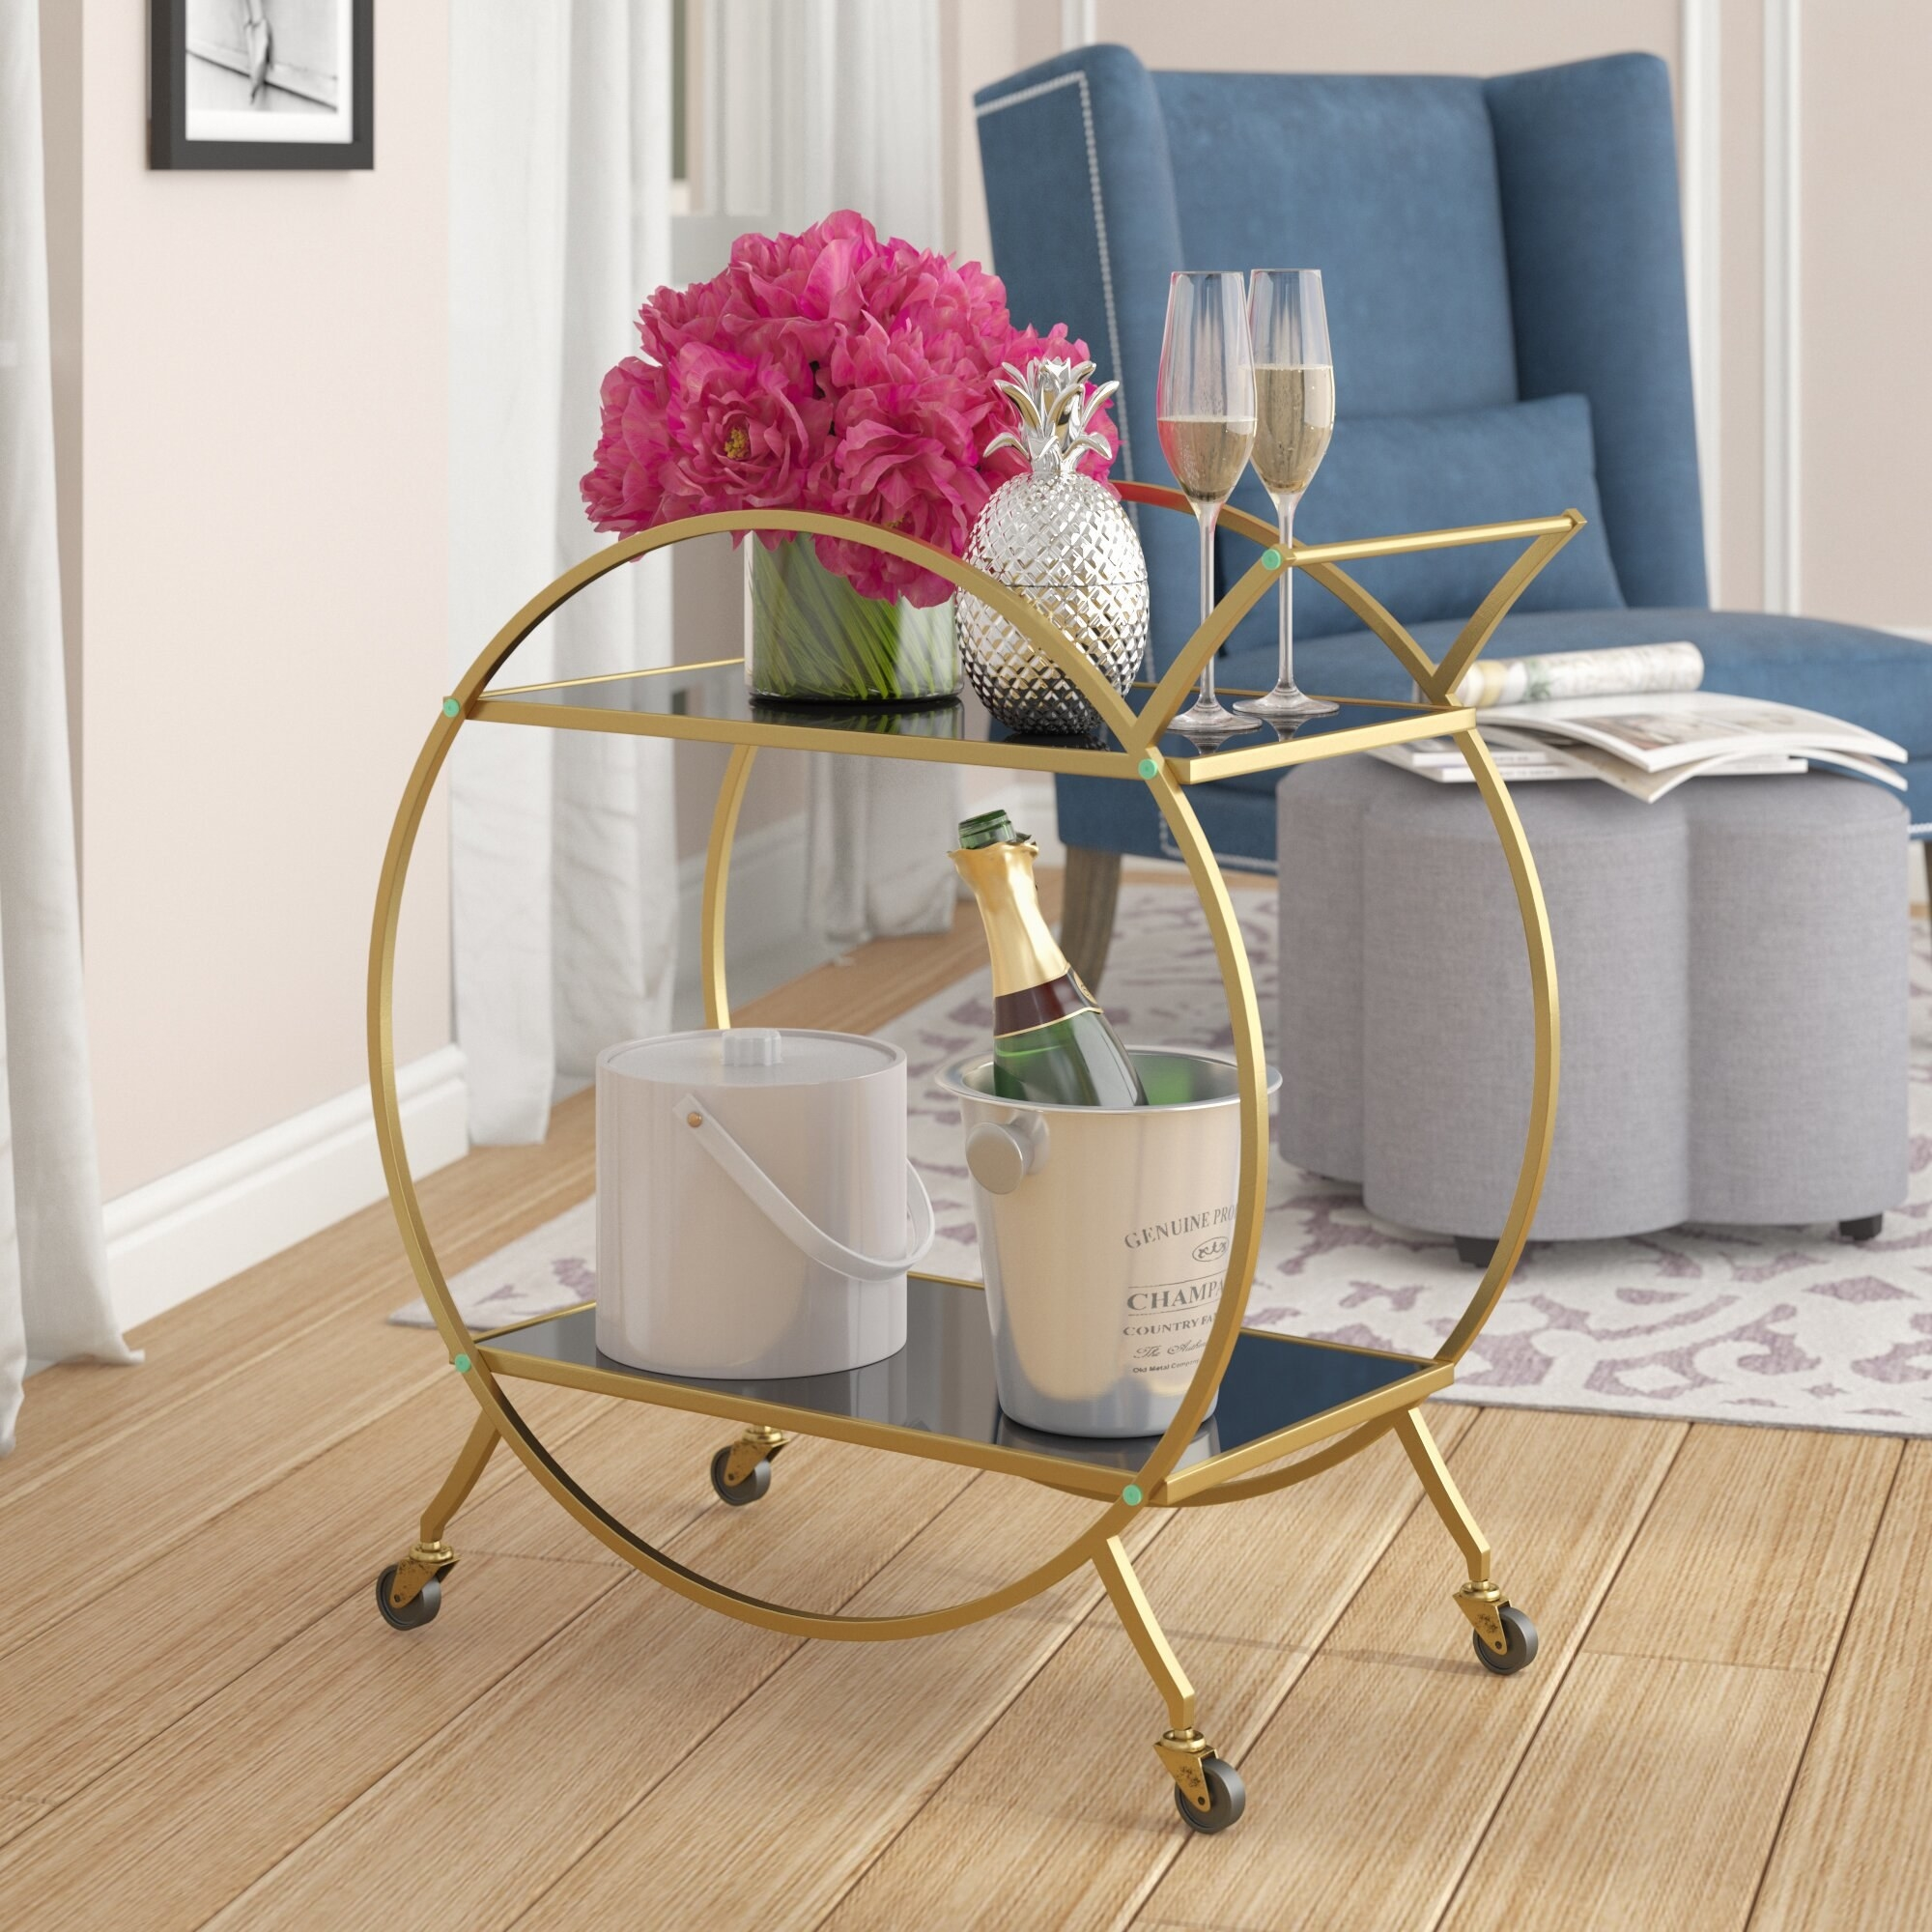 A gold wheeled bar cart with the sides shaped like circles